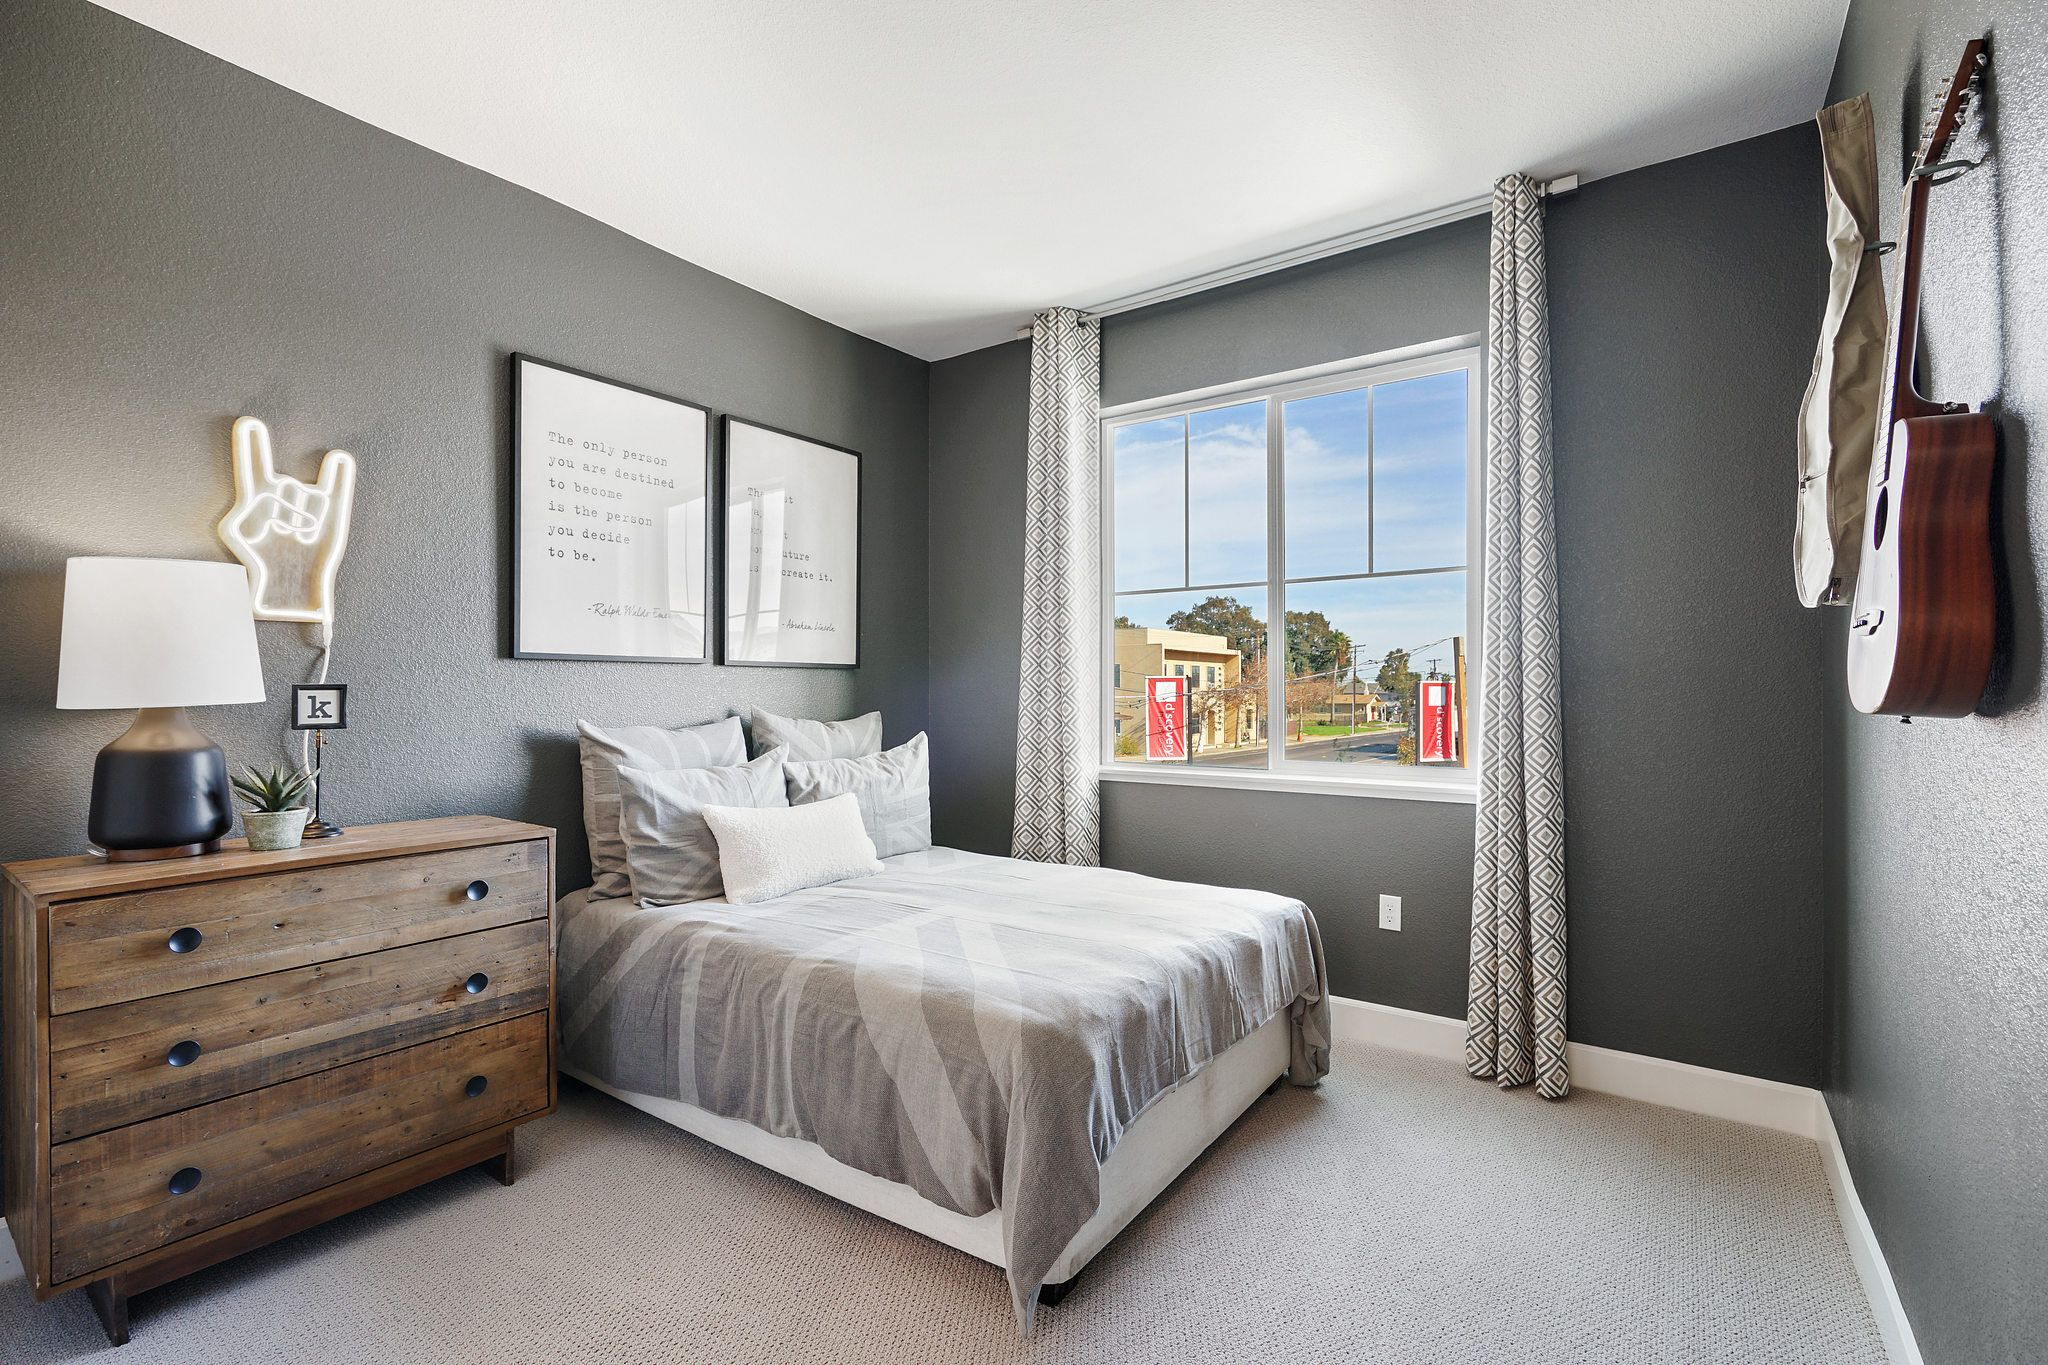 Bedroom featured in the Avalon By Discovery Homes in Oakland-Alameda, CA